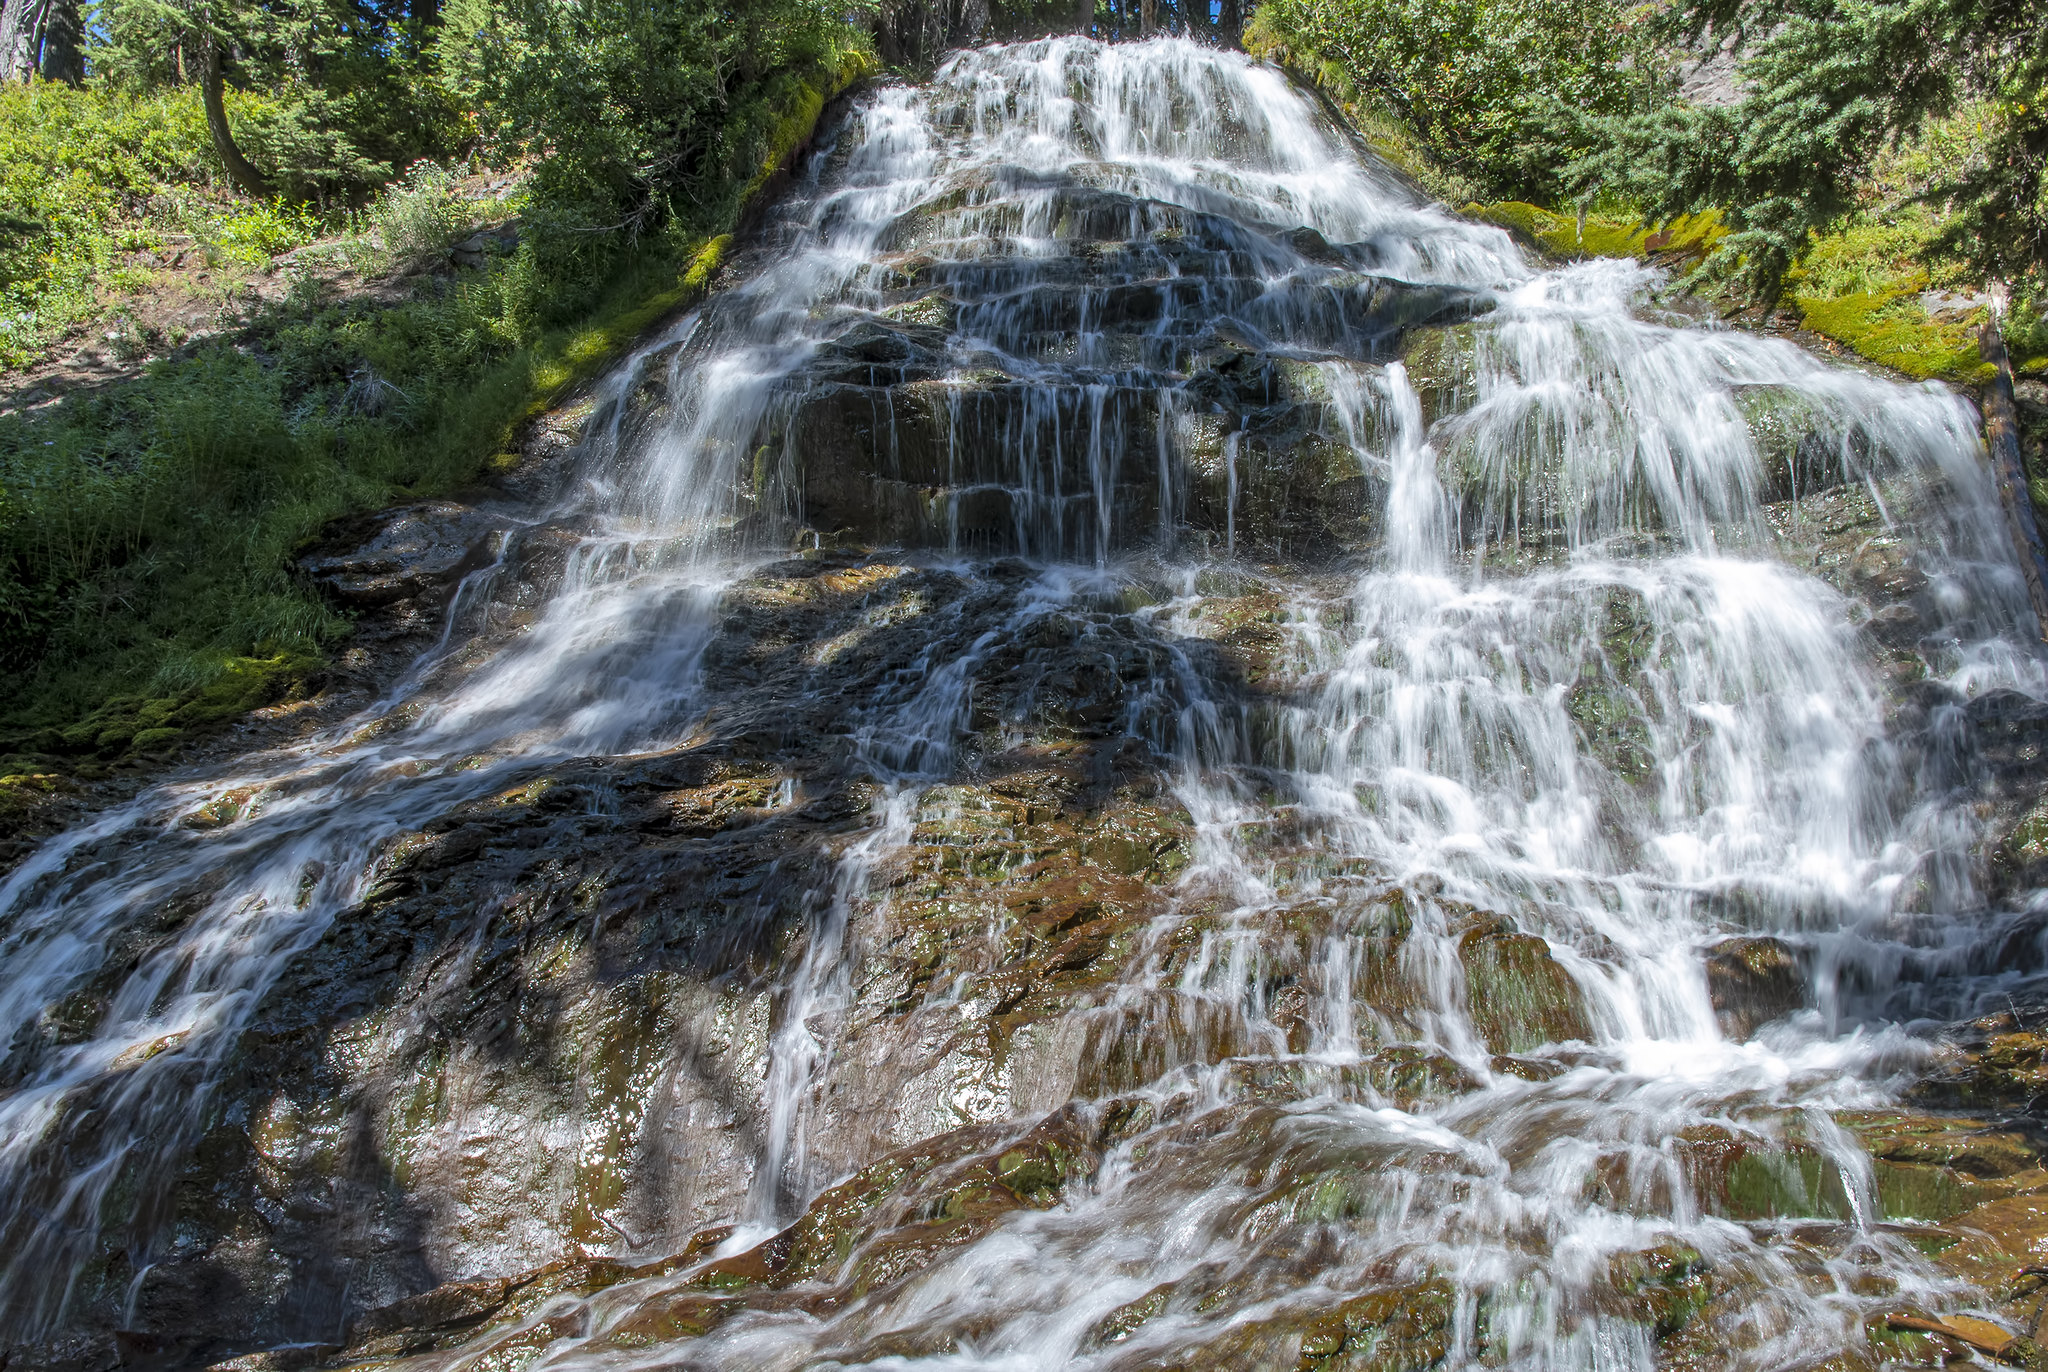 Lesser known waterfalls in Oregon